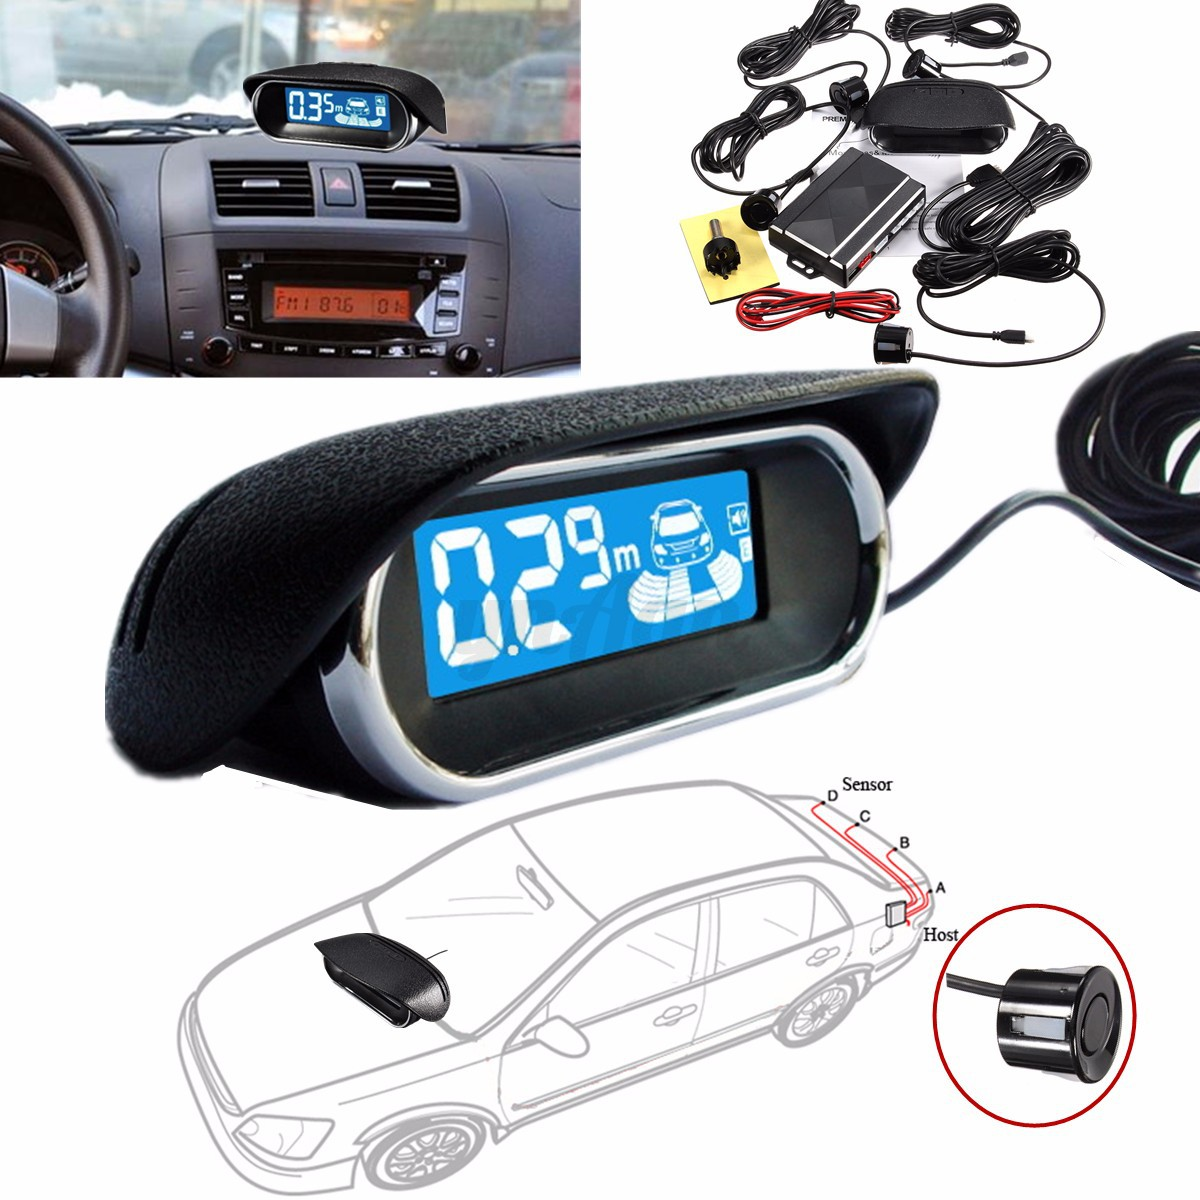 4 capteurs voiture radar de recul syst me led cran parcage car parking buzzer ebay. Black Bedroom Furniture Sets. Home Design Ideas